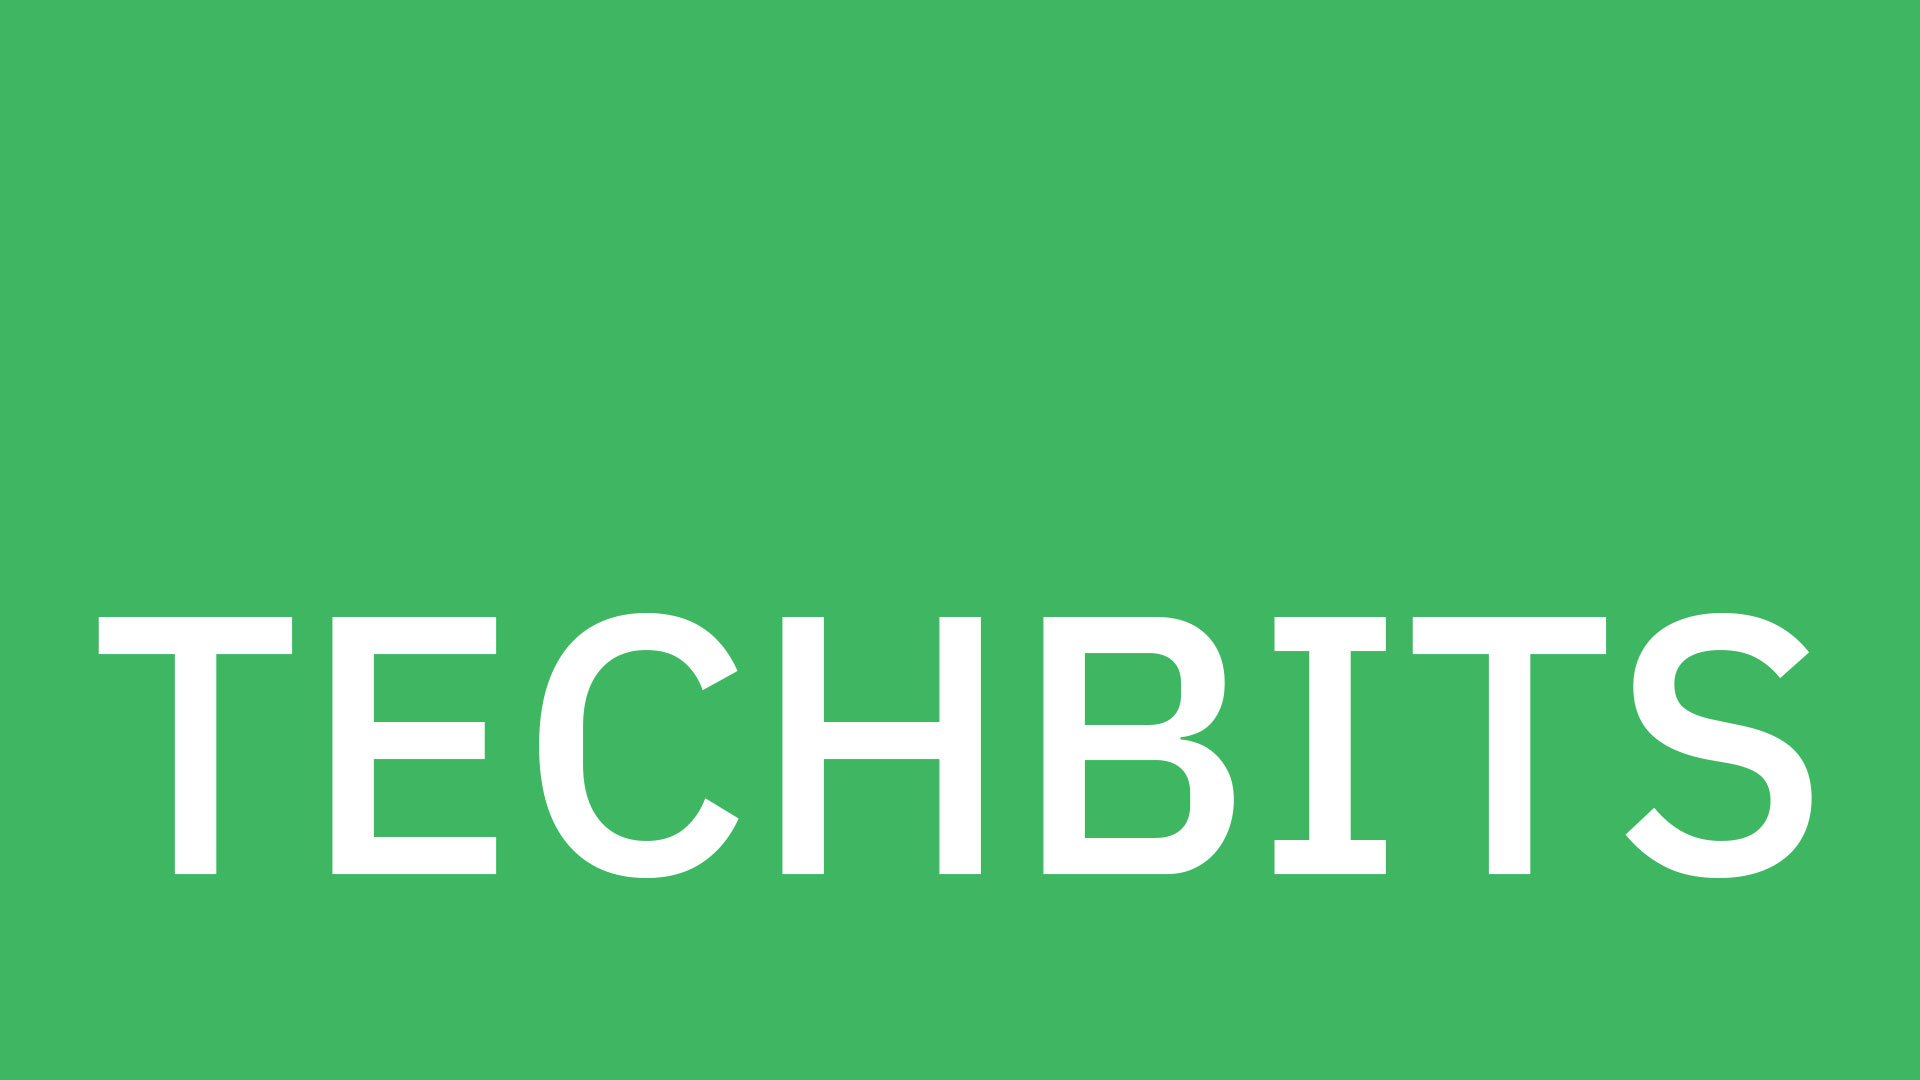 Techbits in white text on a green background.